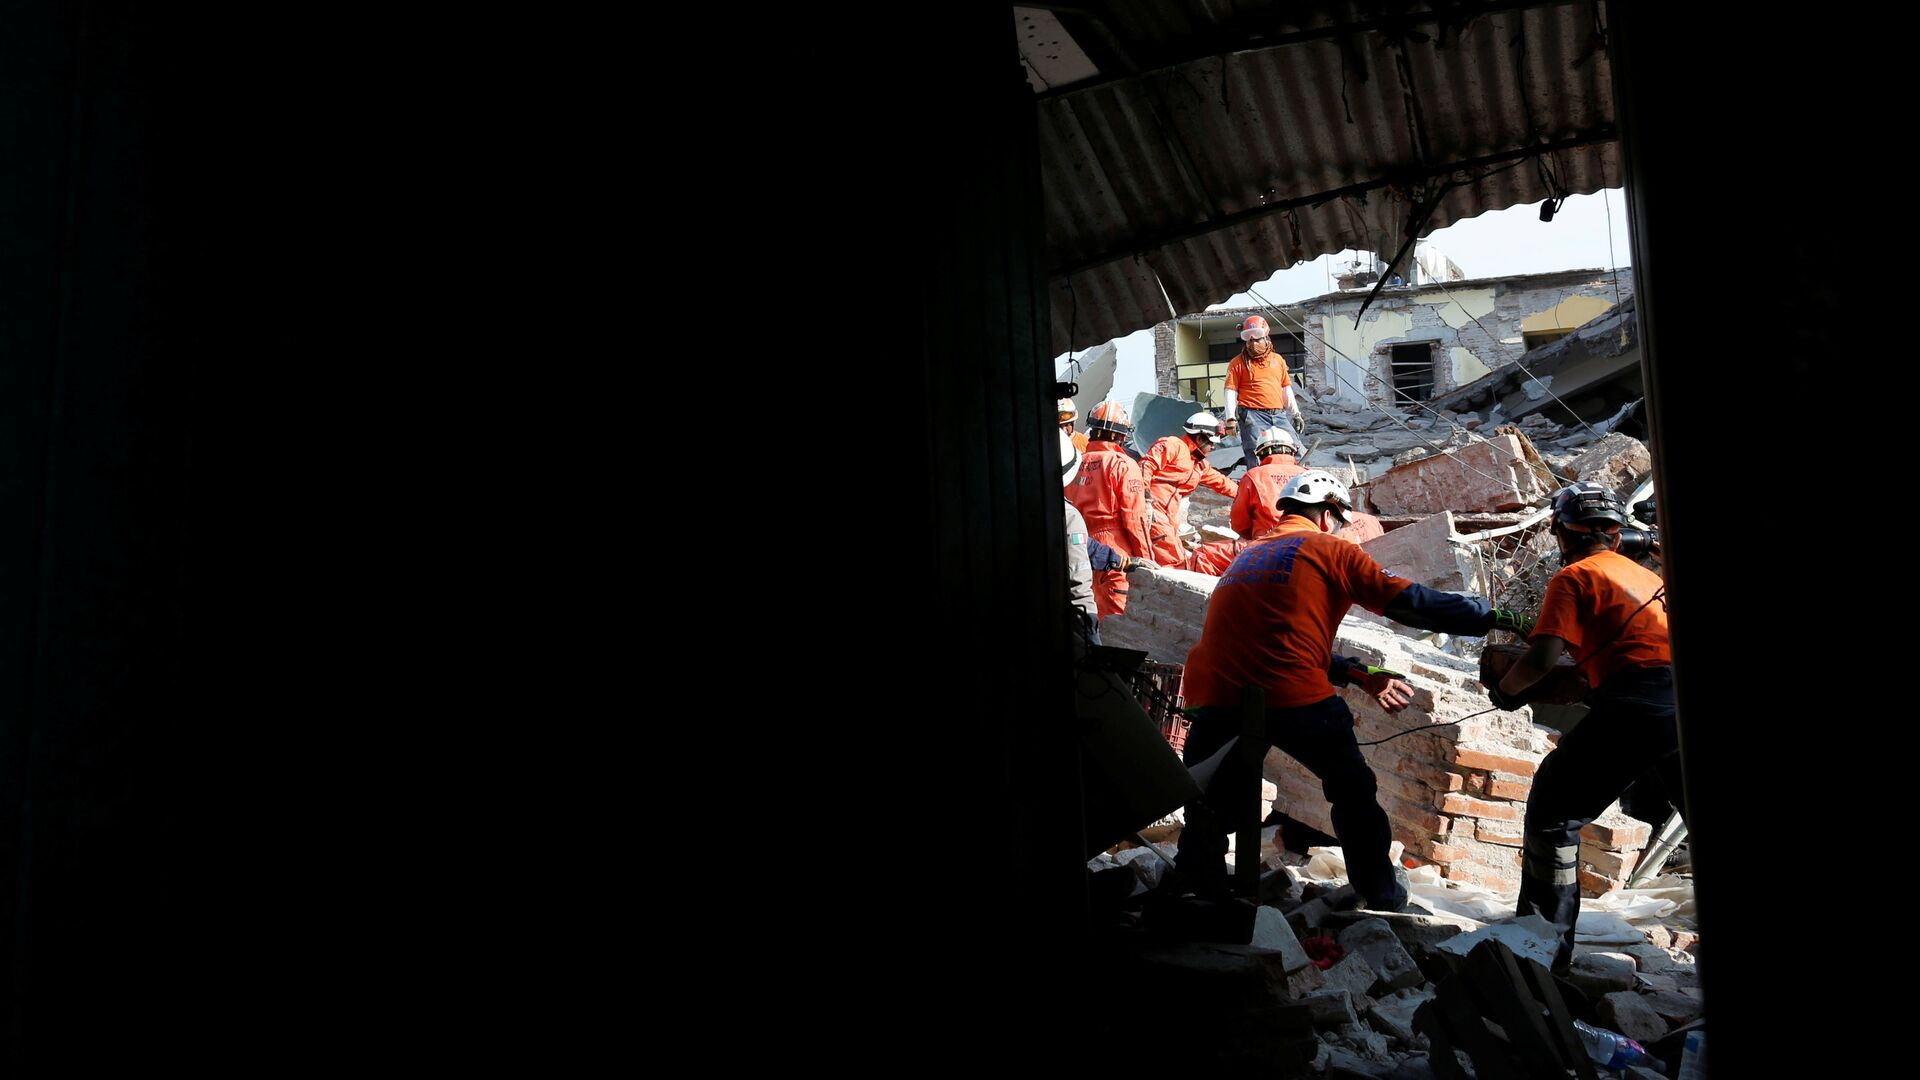 Rescue workers known as Topos Azteca clear debris after an earthquake struck the southern coast of Mexico late on Thursday, in Juchitan, Mexico - Sputnik Mundo, 1920, 28.06.2021